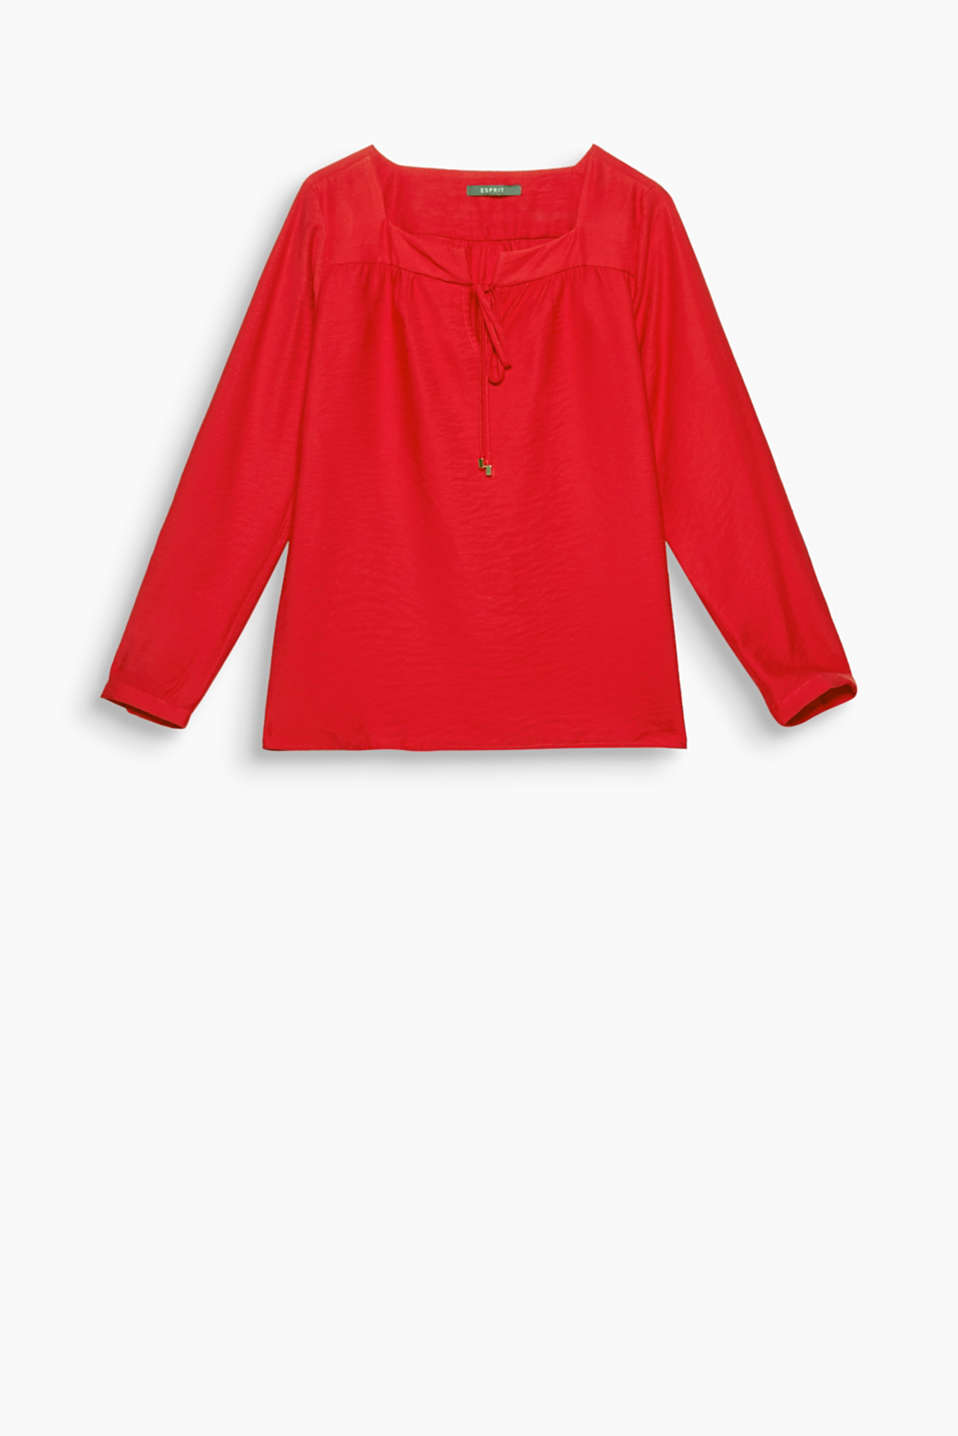 Stylish, office-ready tunic: flowing, textured blouse with a square neckline and ties